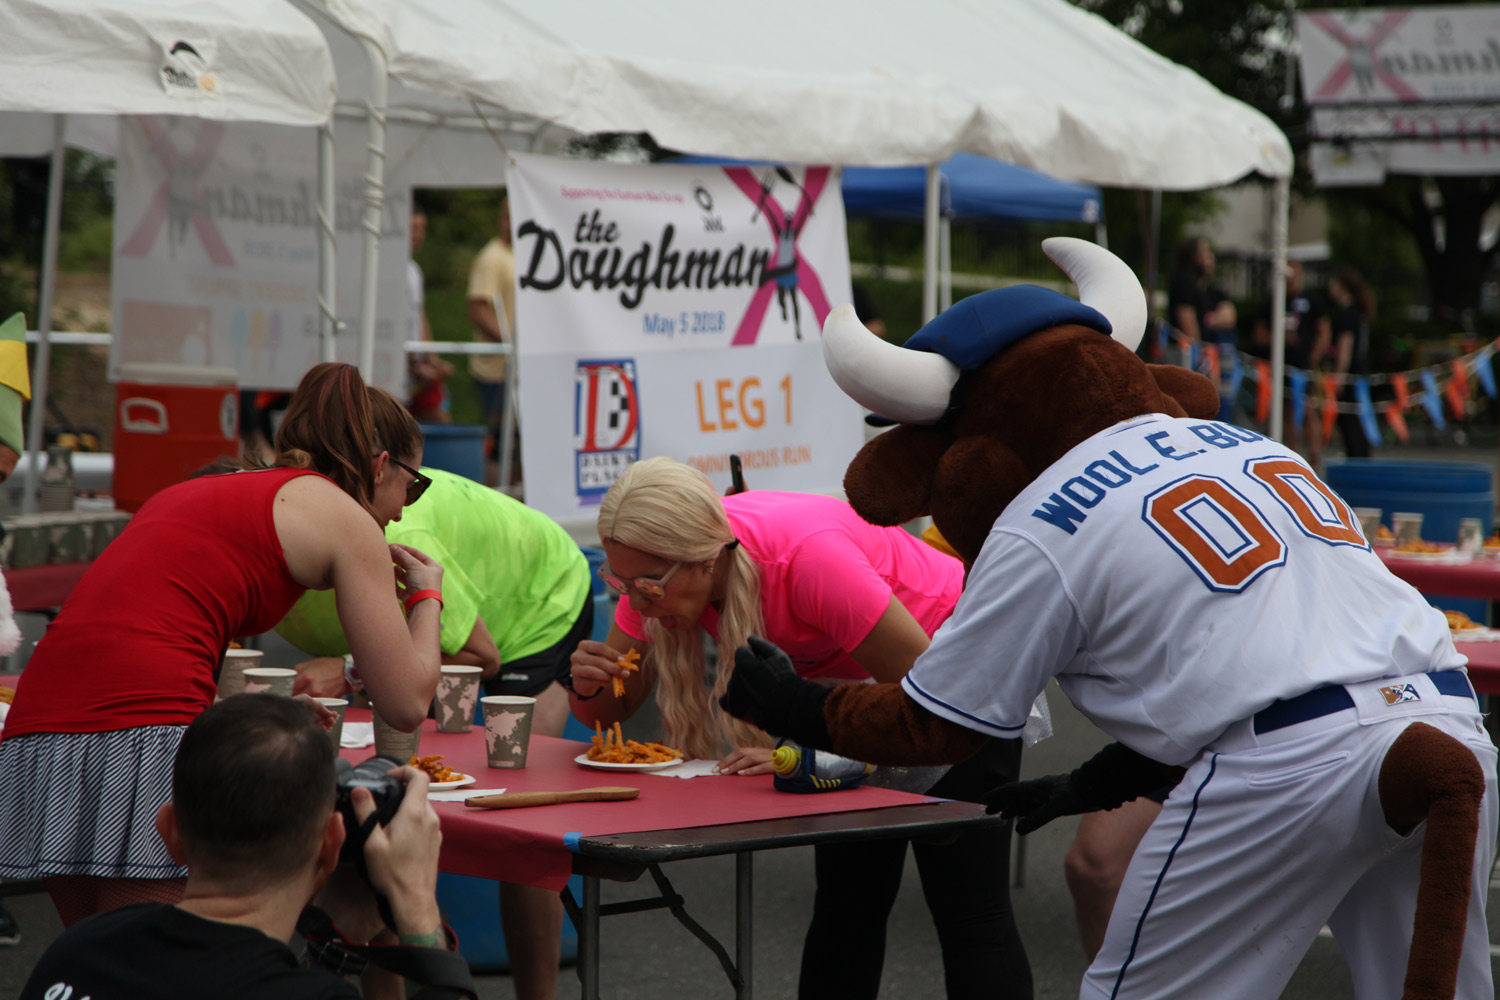 Wool E. Bull (Durham Bulls baseball team mascot) made an appearance to cheer on Jill and other competitors! Photo courtesy of Michael Peace.